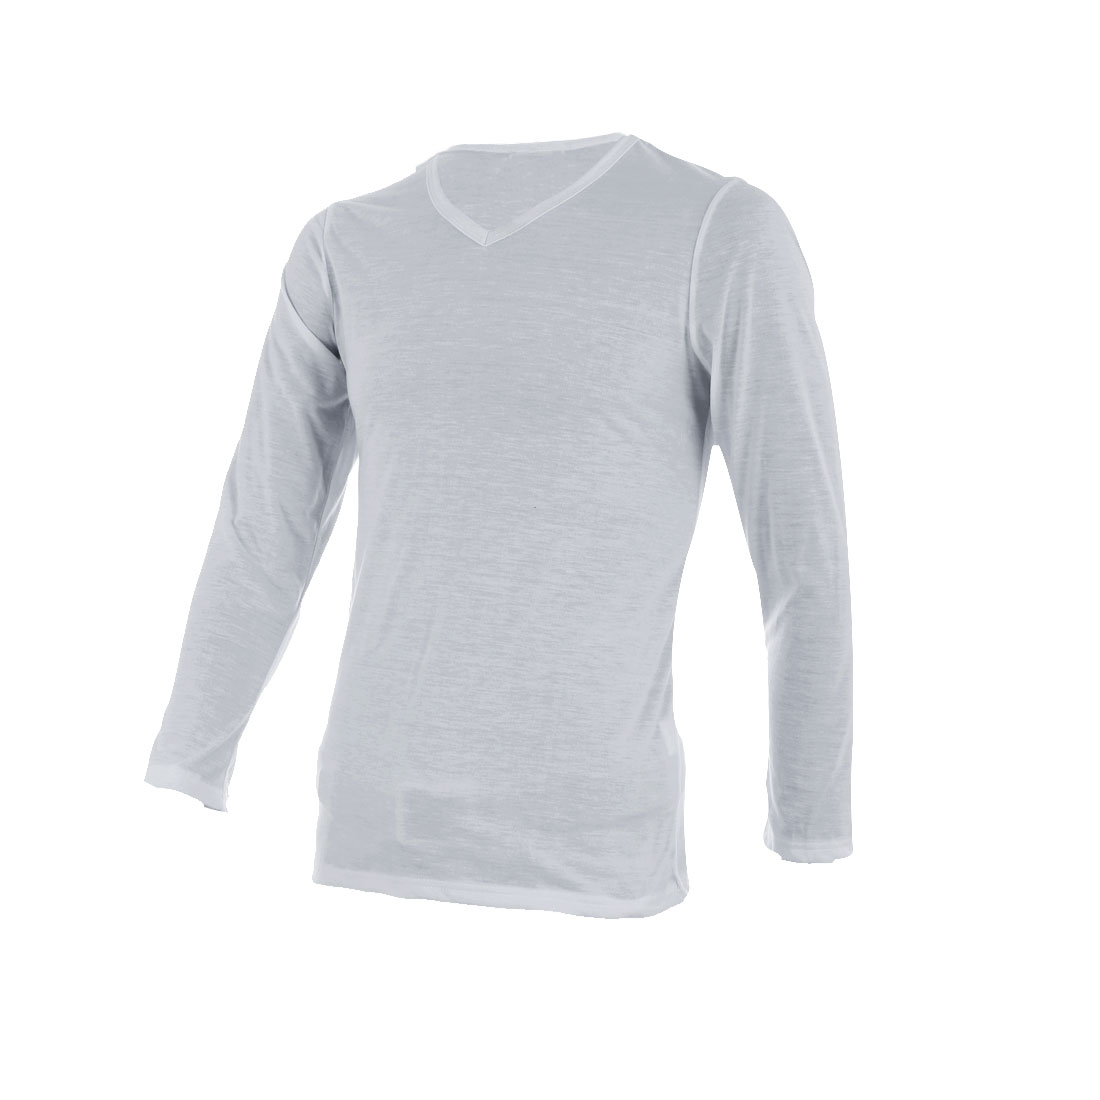 Men Pullover Long Sleeve Casual T-shirt Light Gray S